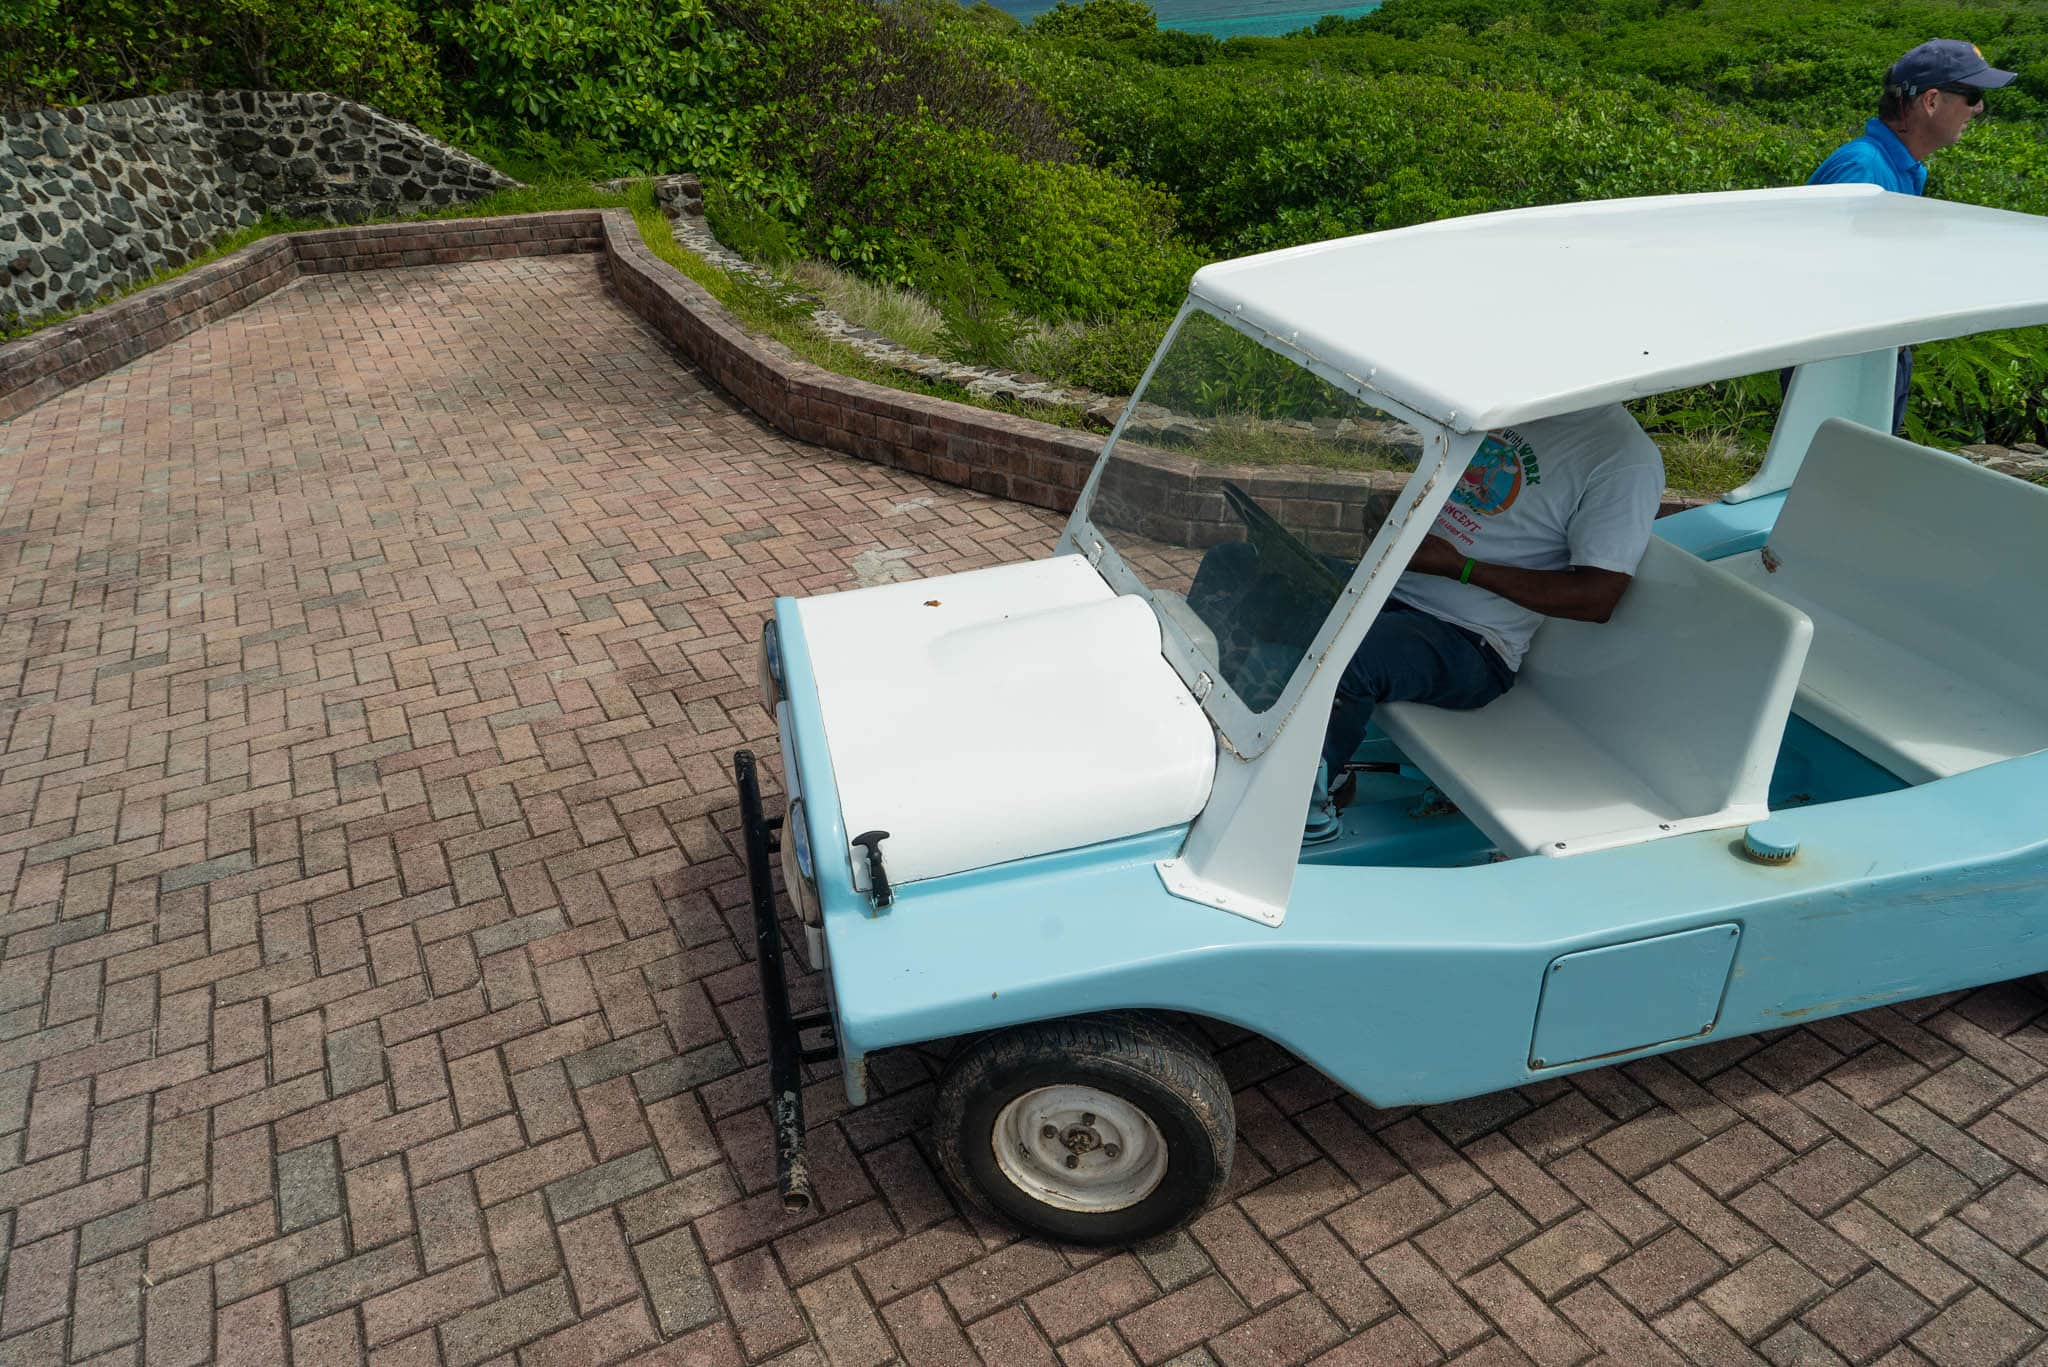 How do you get around your private island? By vintage Mini Moke, of course!